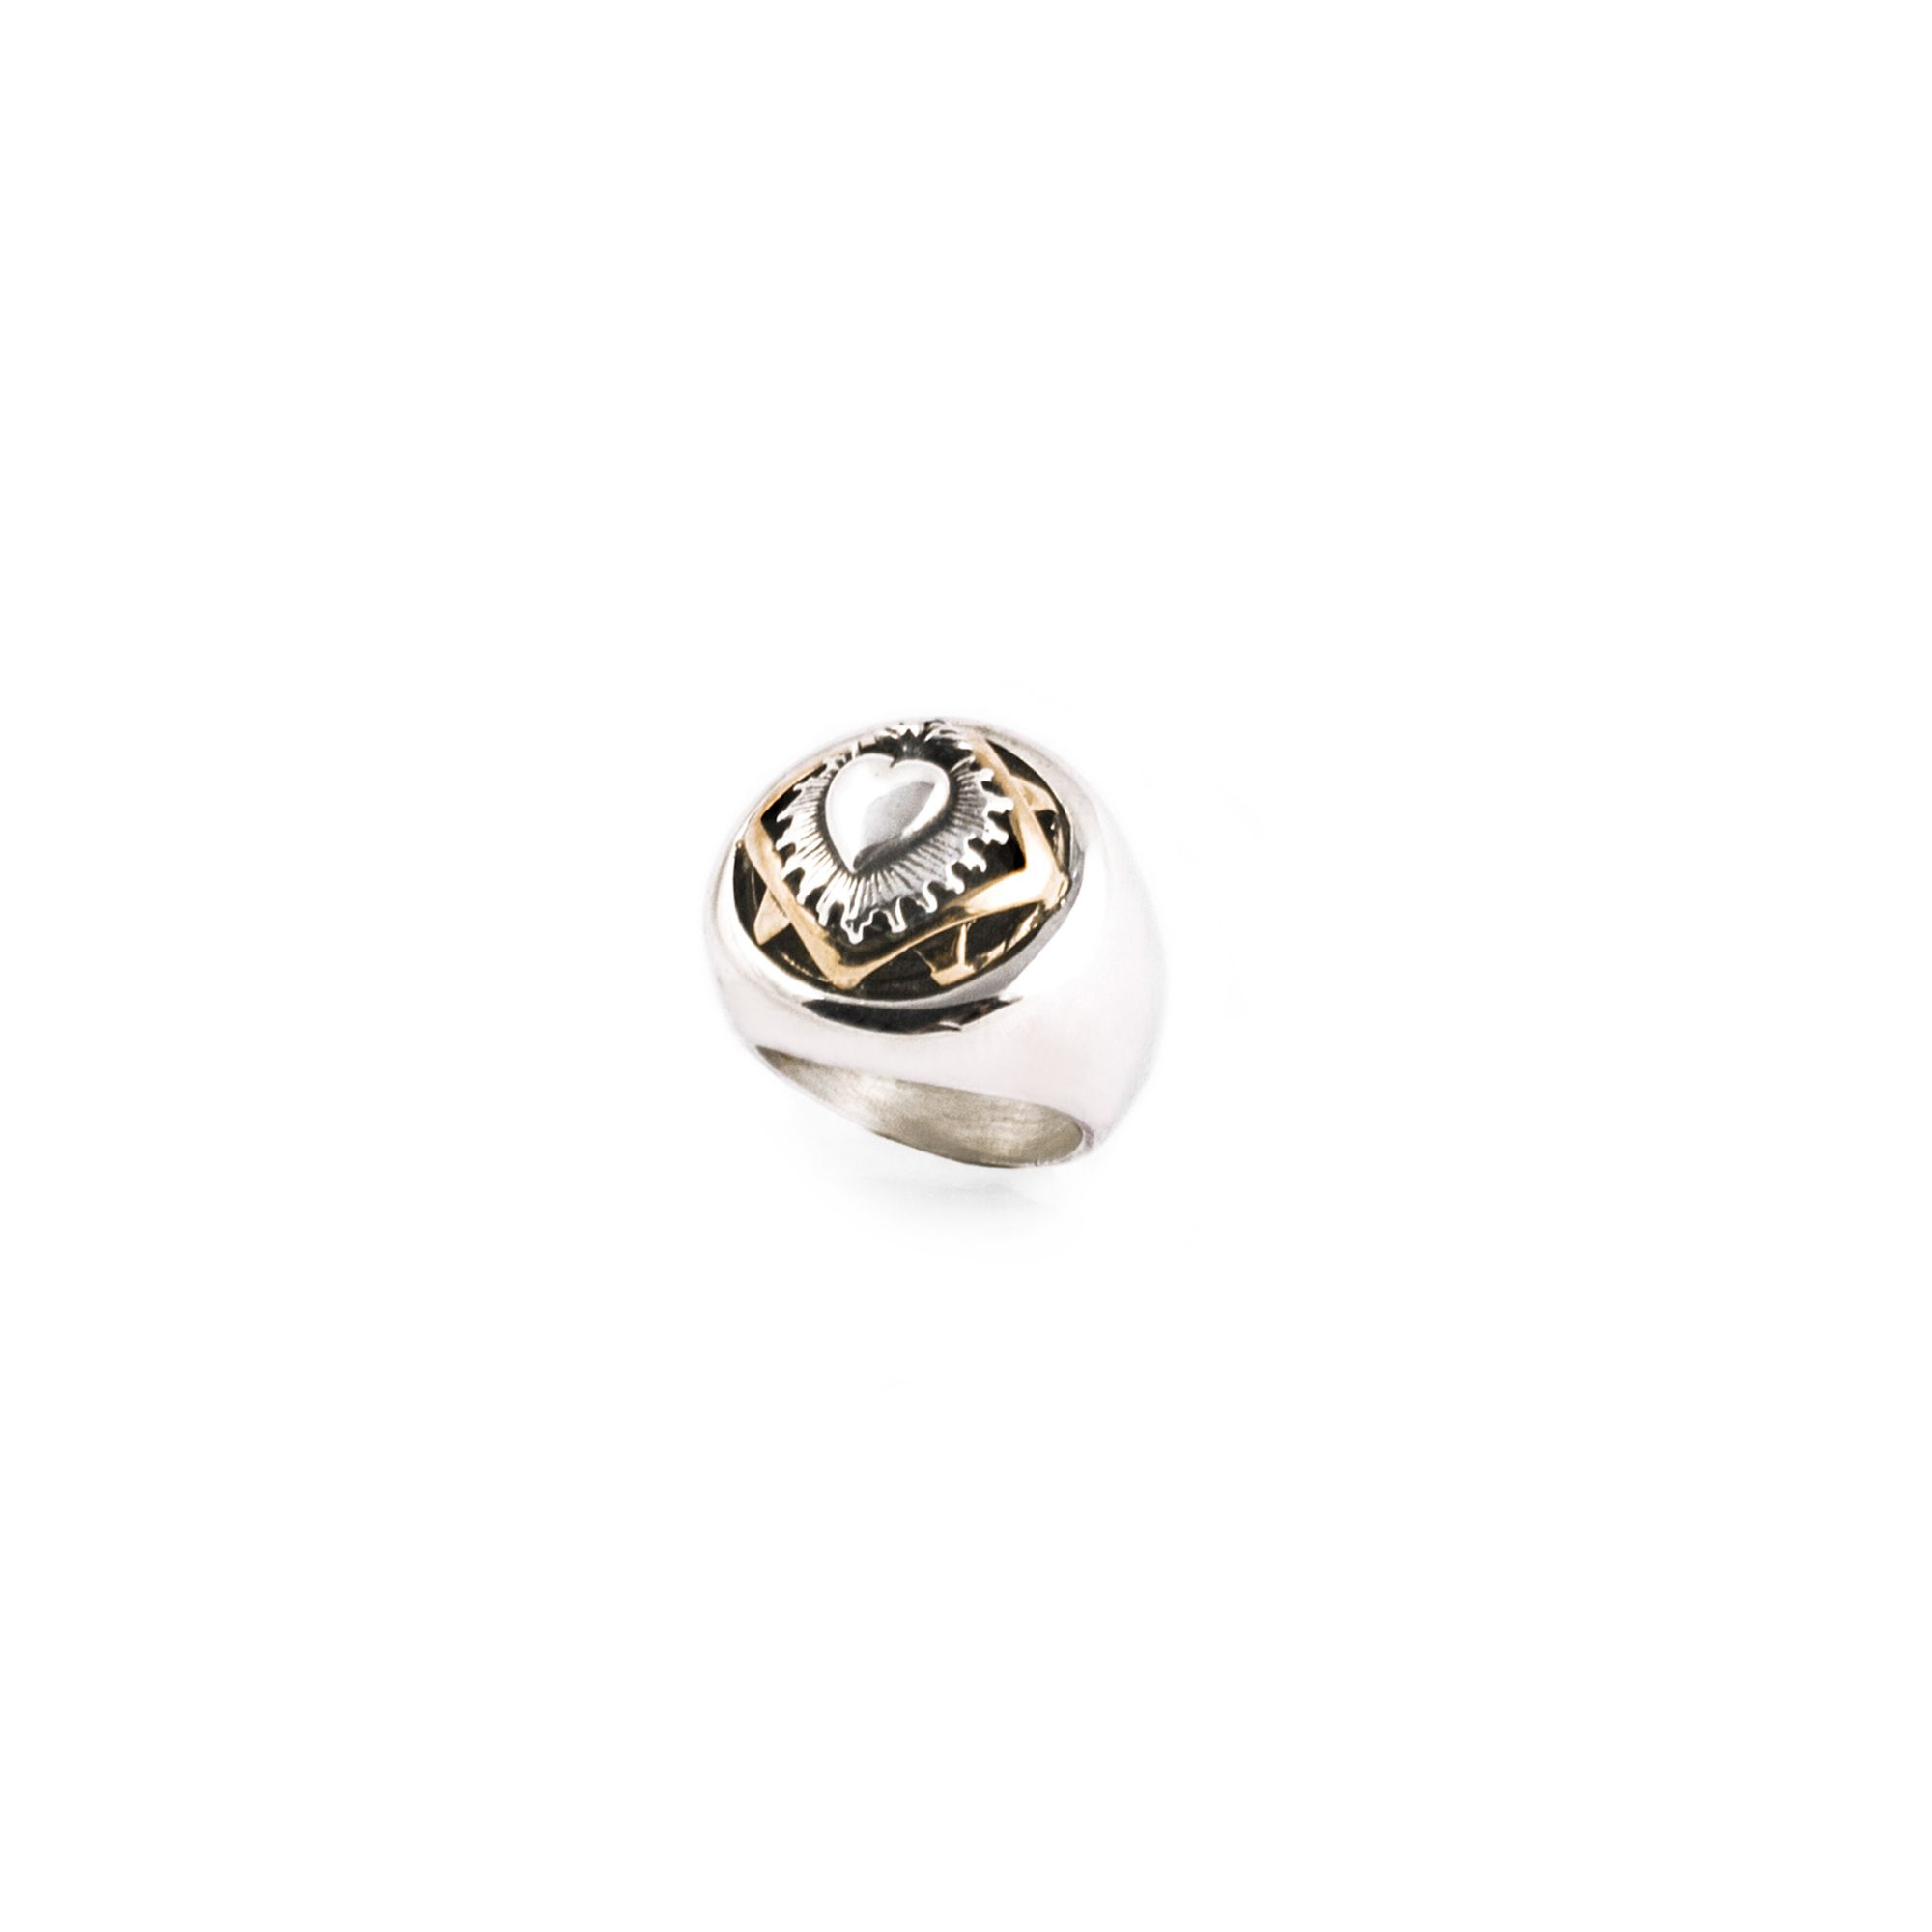 'Sacred heart' pinky ring Silver and bronze ring